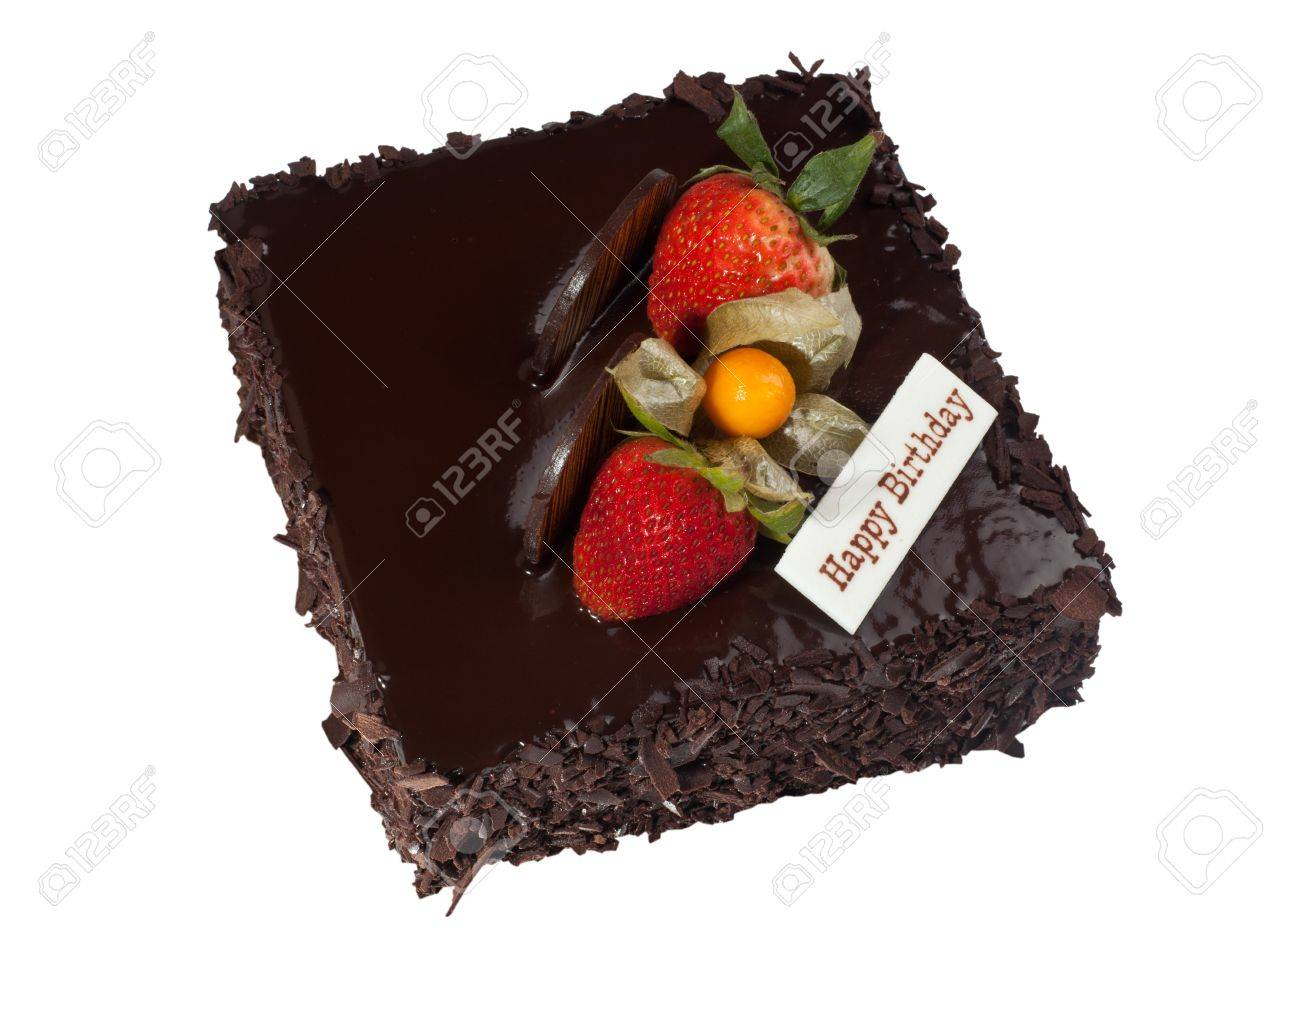 Chocolate Birthday Cake With Strawberry Topping Isolated On White Background Stock Photo